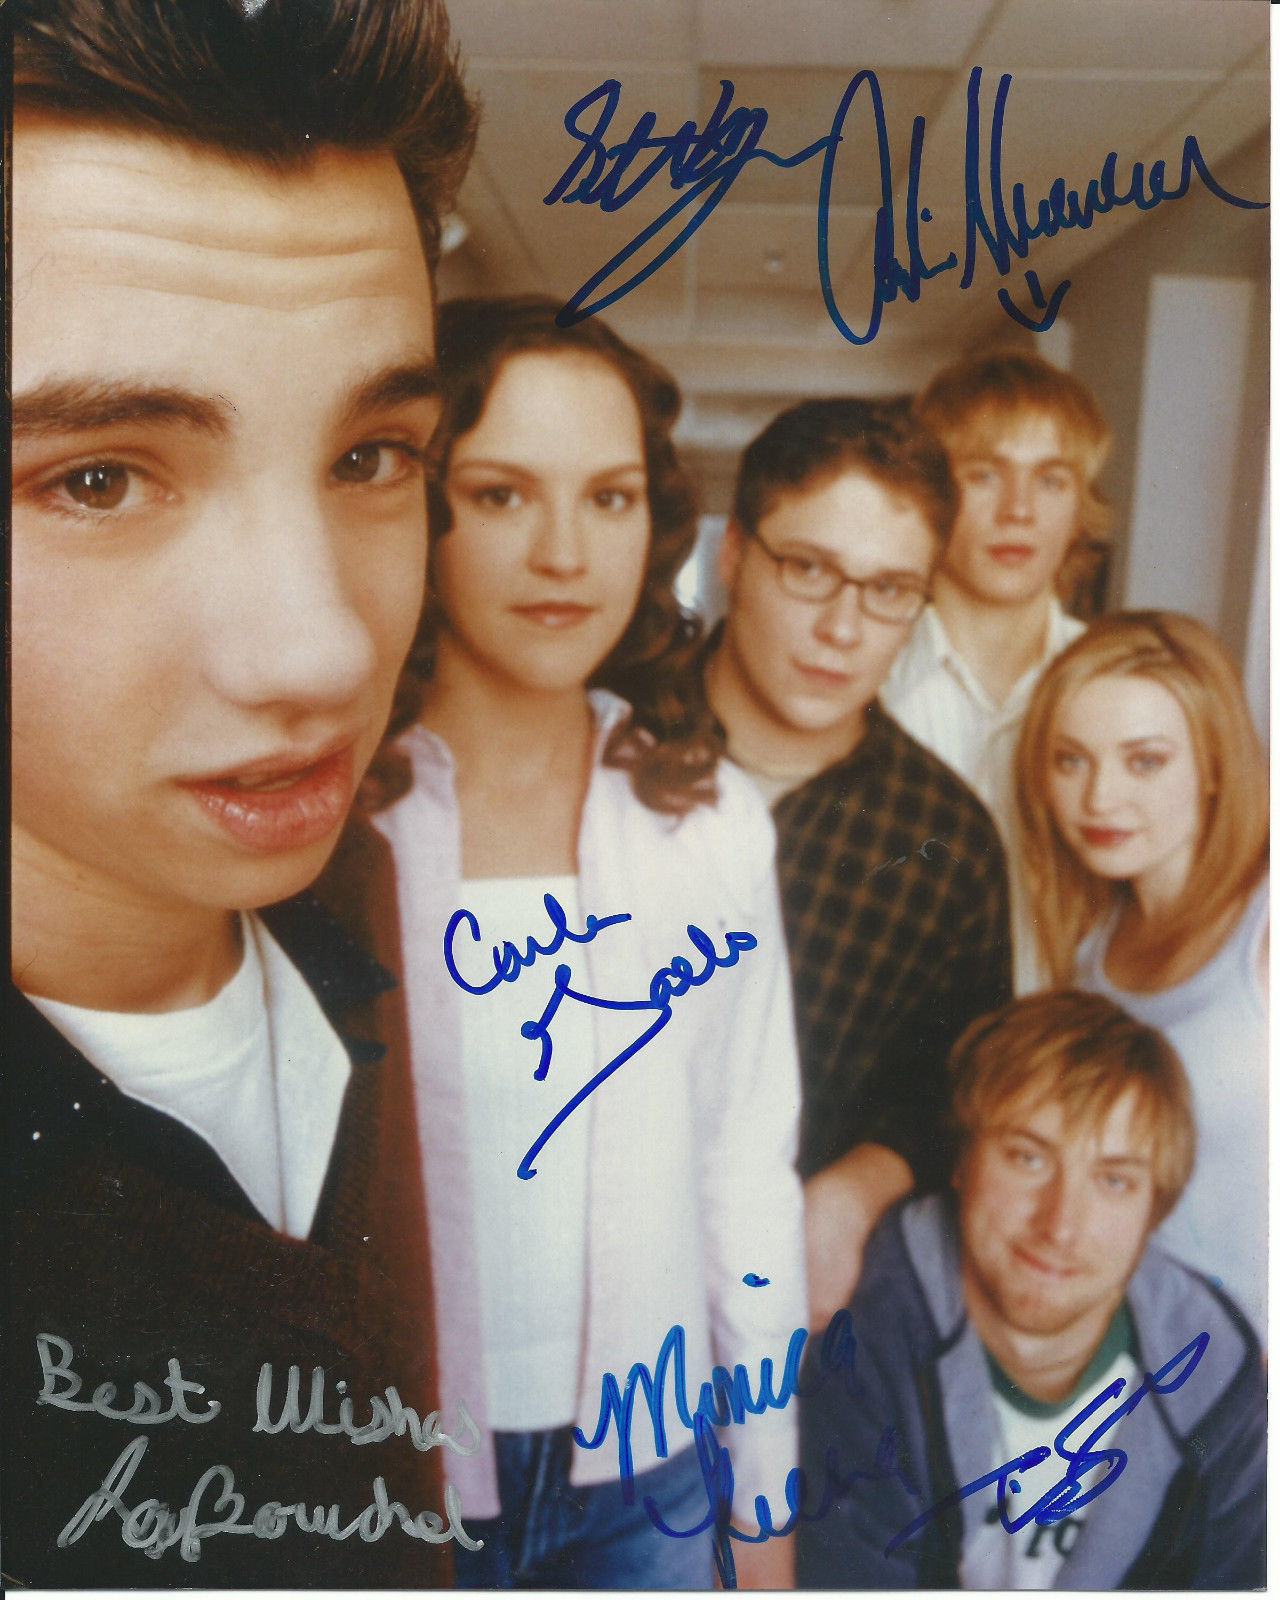 s-l1600UNDECLARED_CAST_PHOTO_IN-PERSON_HAND_SIGNED_AUTOGRAPHED_PHOTO_BY_6